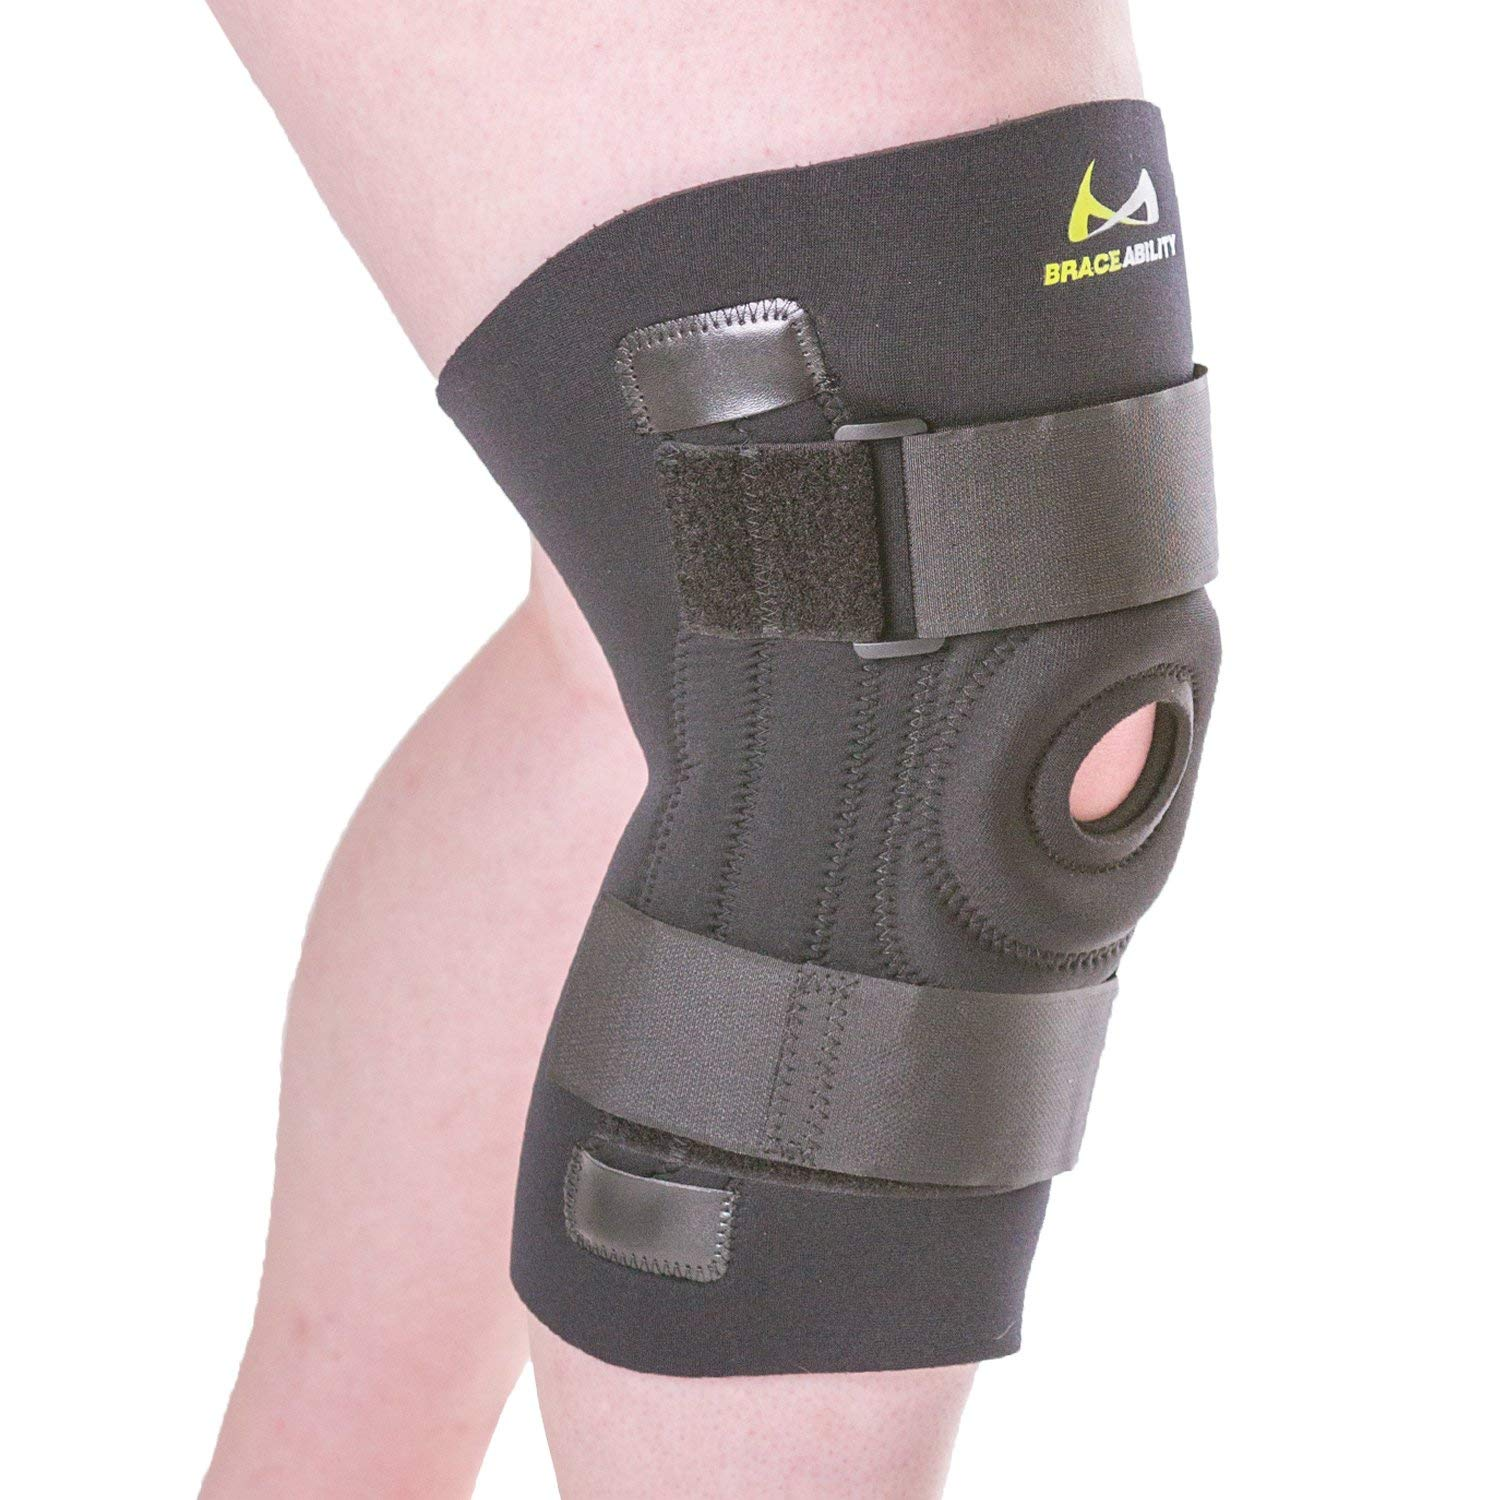 01de49a18e Get Quotations · BraceAbility Knee Brace for Large Legs and Bigger People  with Wide Thighs | Kneecap Protection Pad